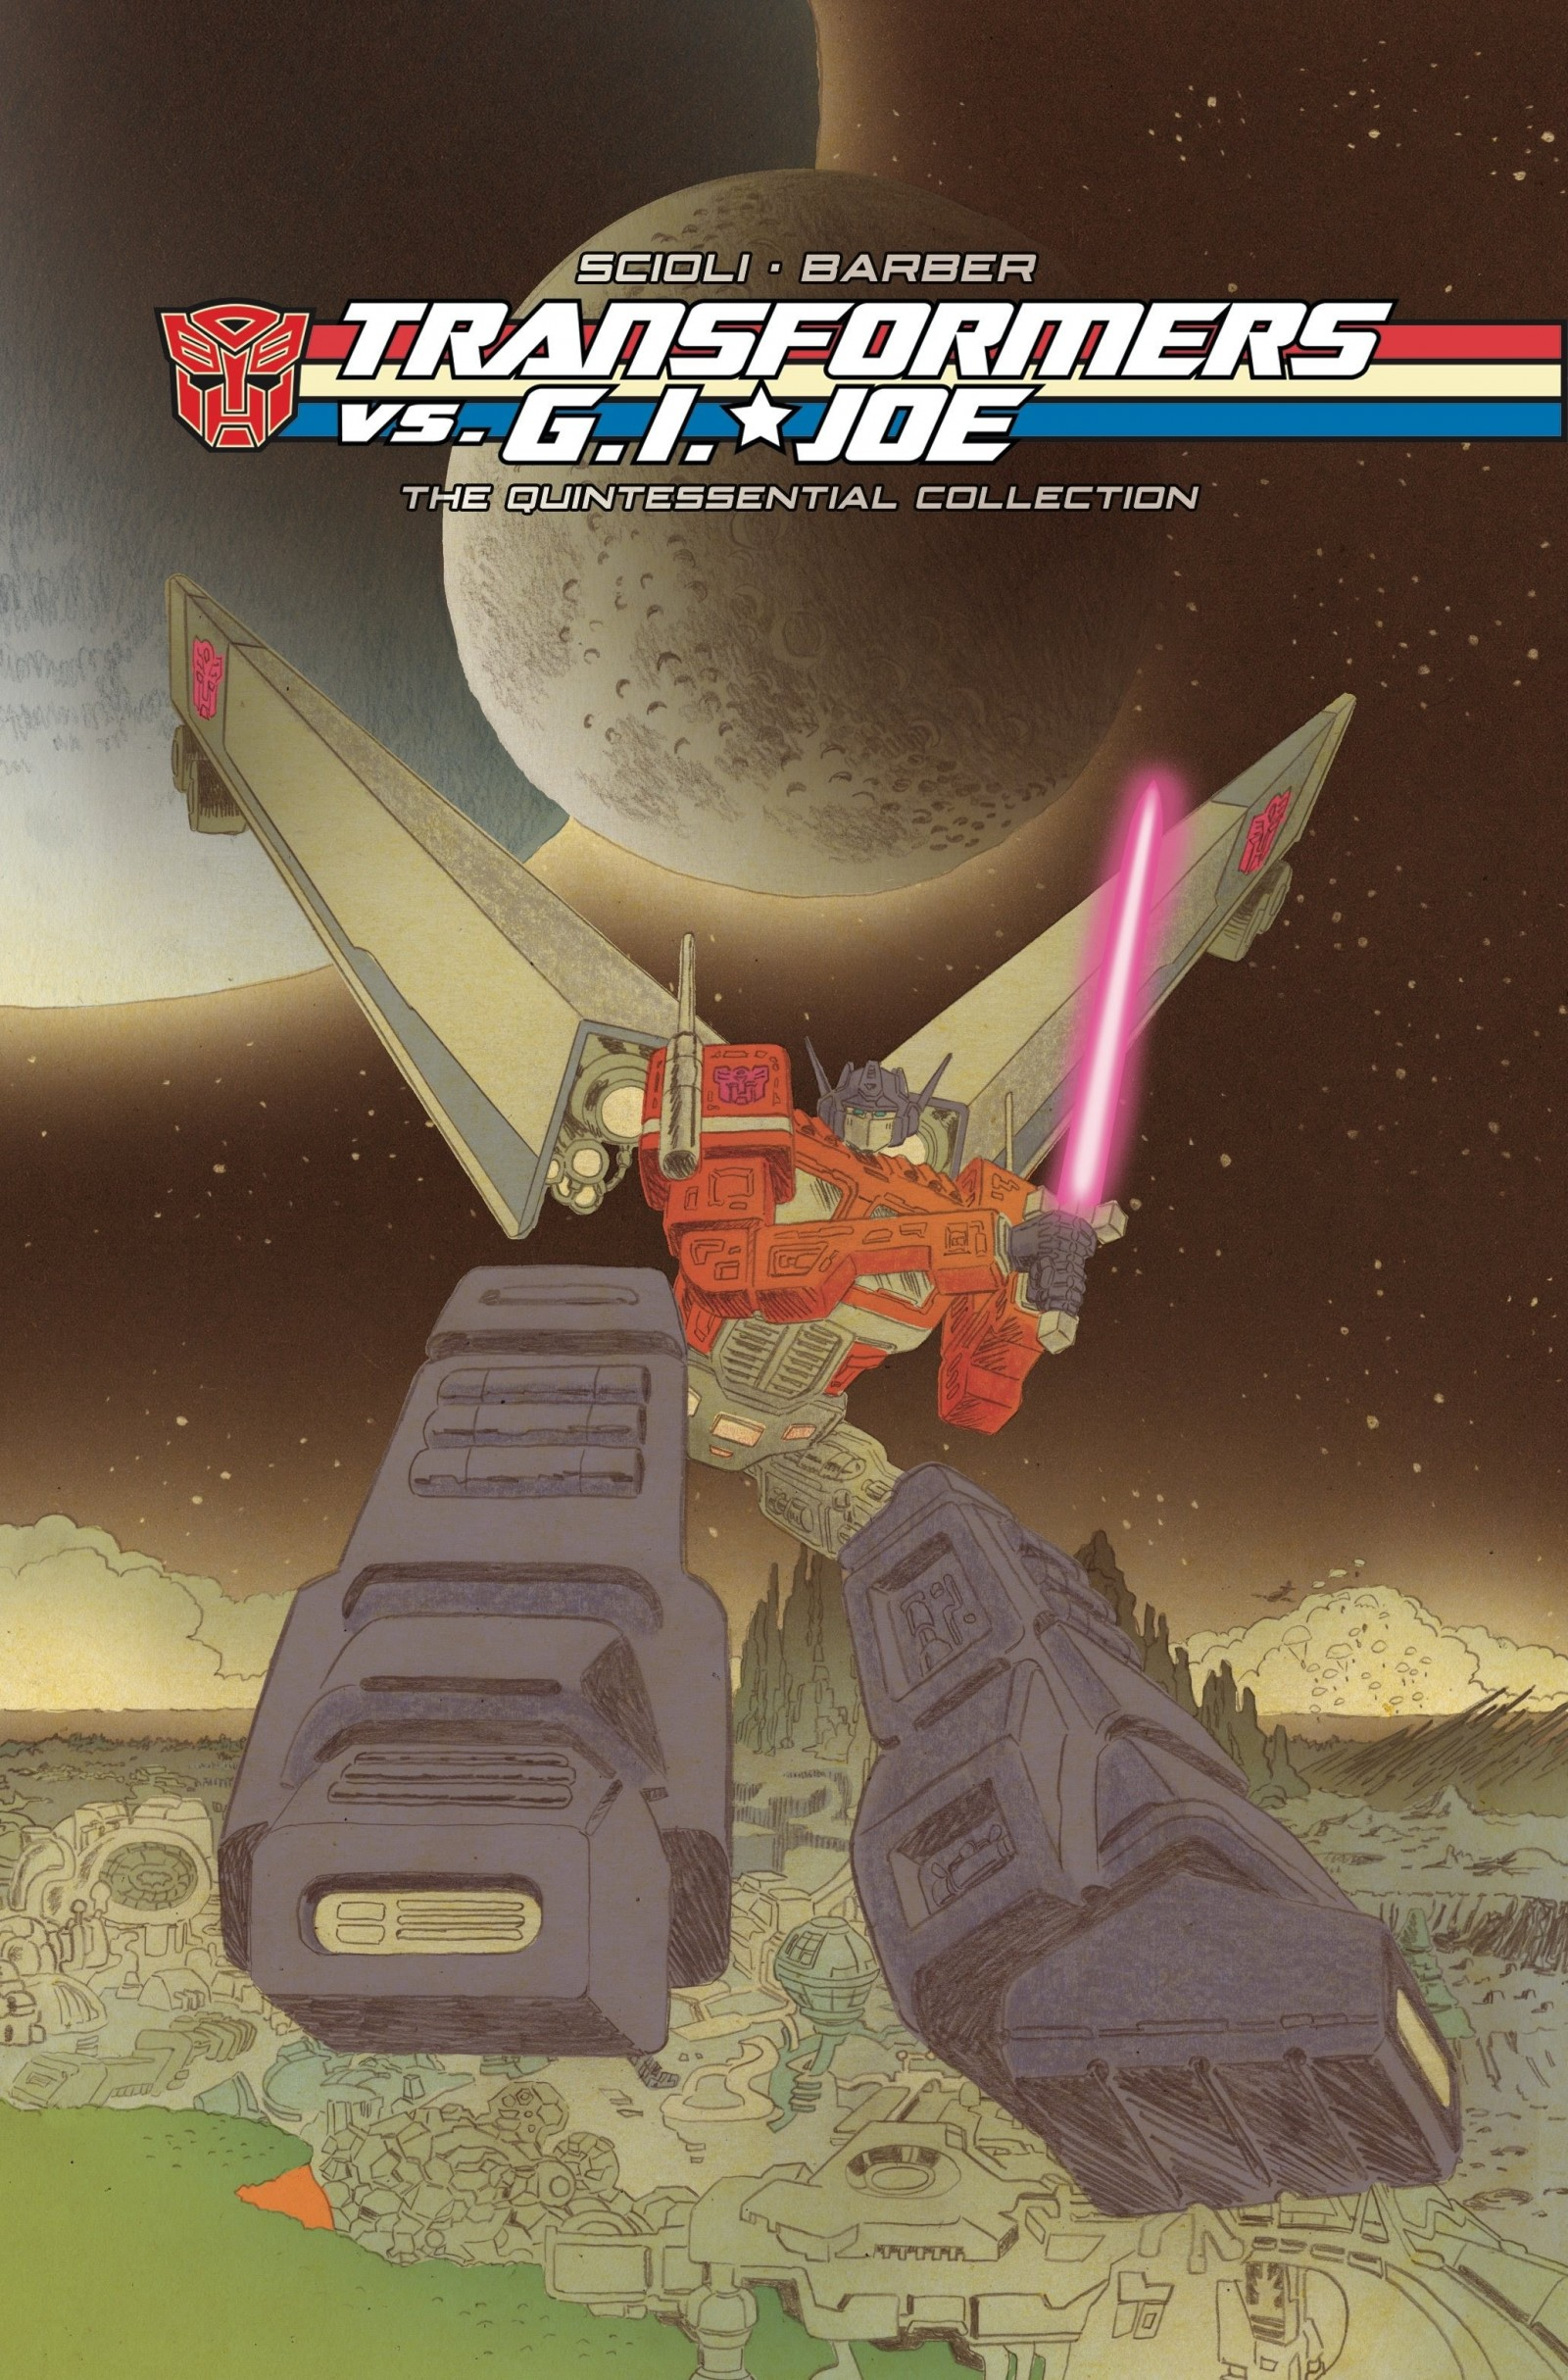 Transformers News: IDW Transformers vs. G.I. Joe Gets Complete Quintessential Reissue